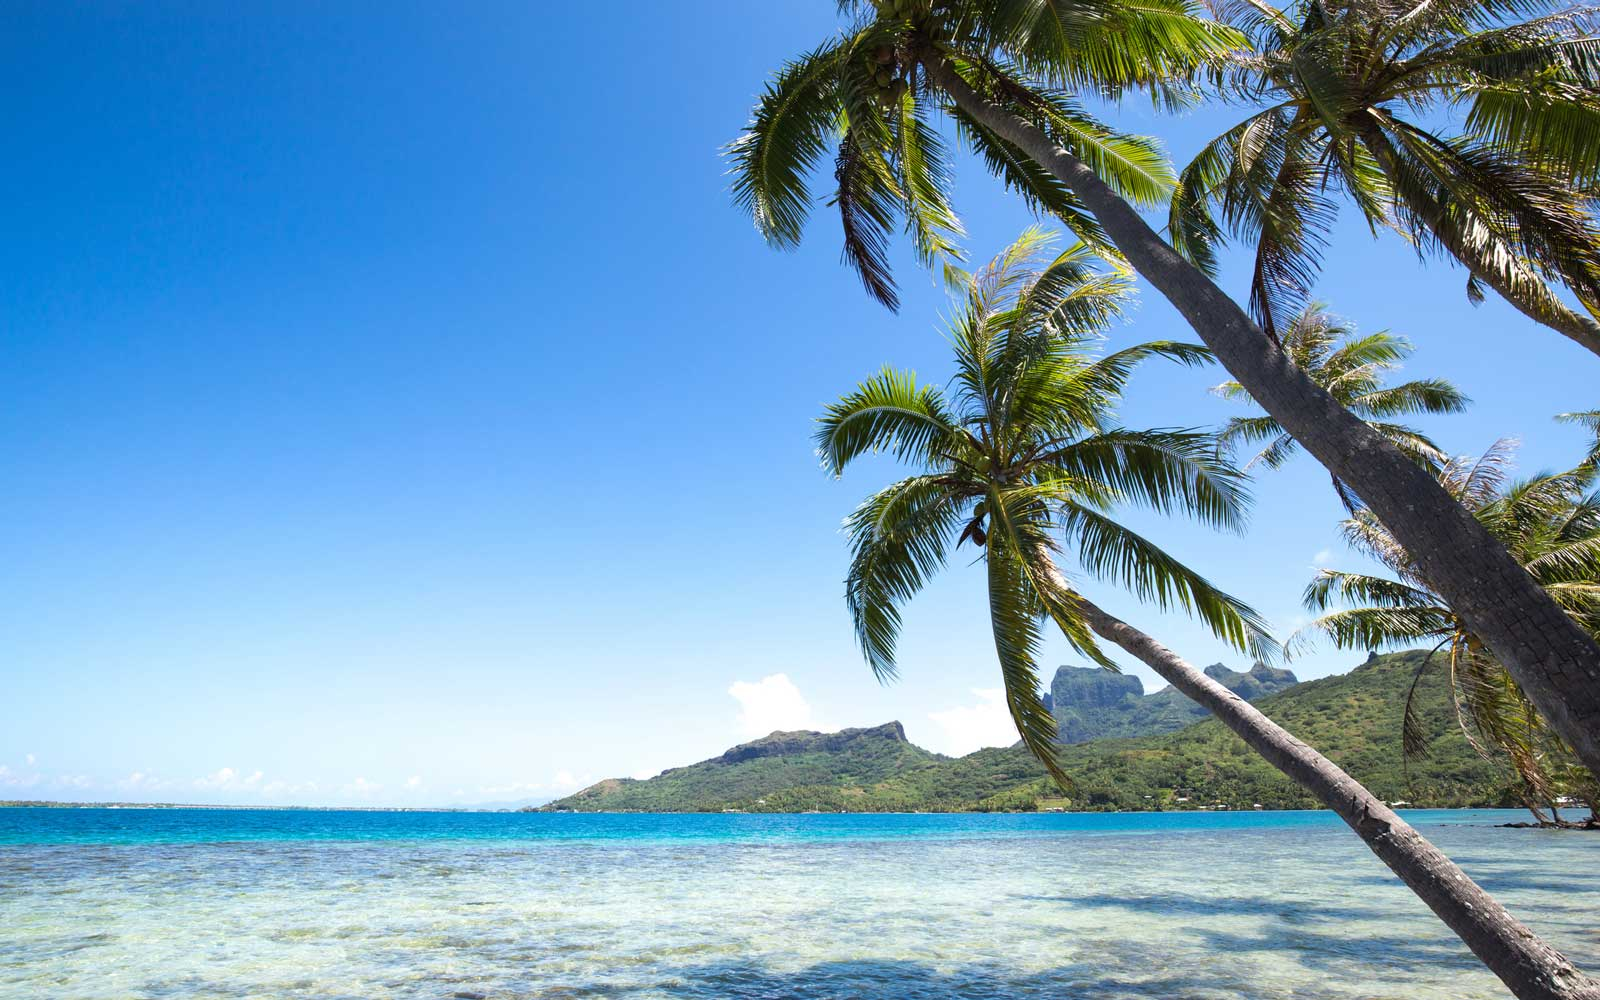 United Airlines Will Give You a Free Trip to Tahiti if You Can Prove You're a Terrible Workaholic